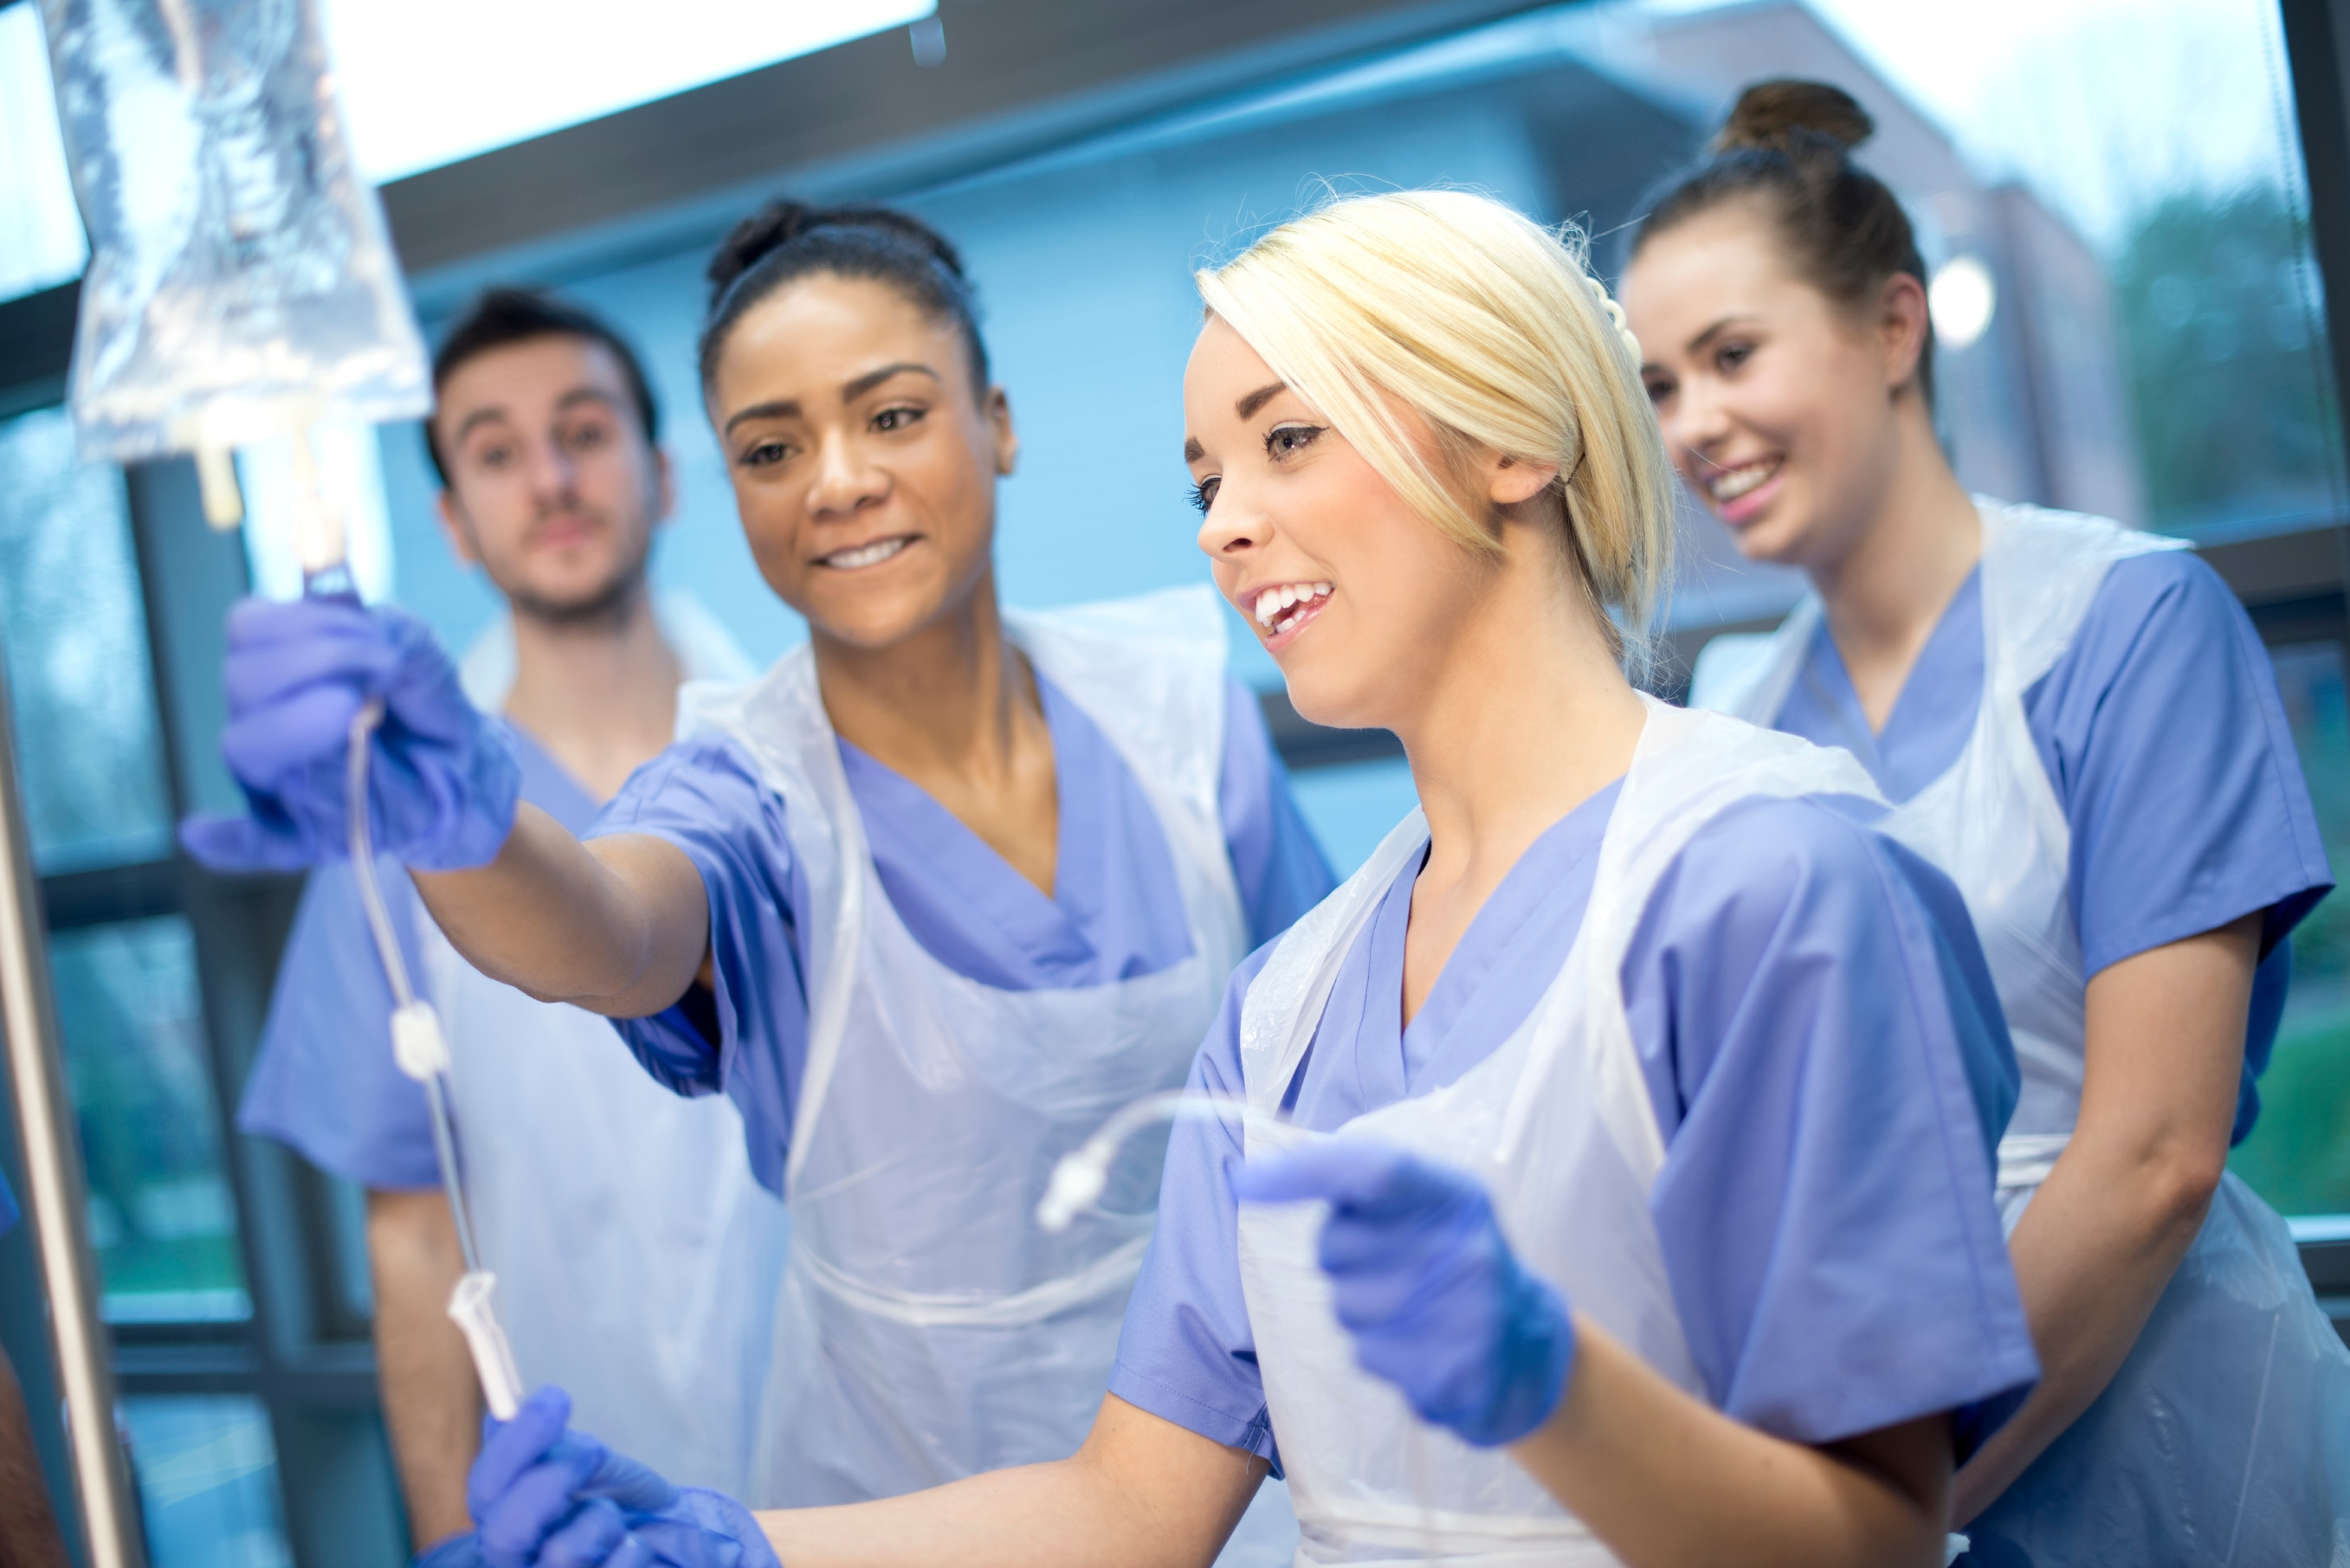 Graduate Entry Master Of Nursing Program Launches At